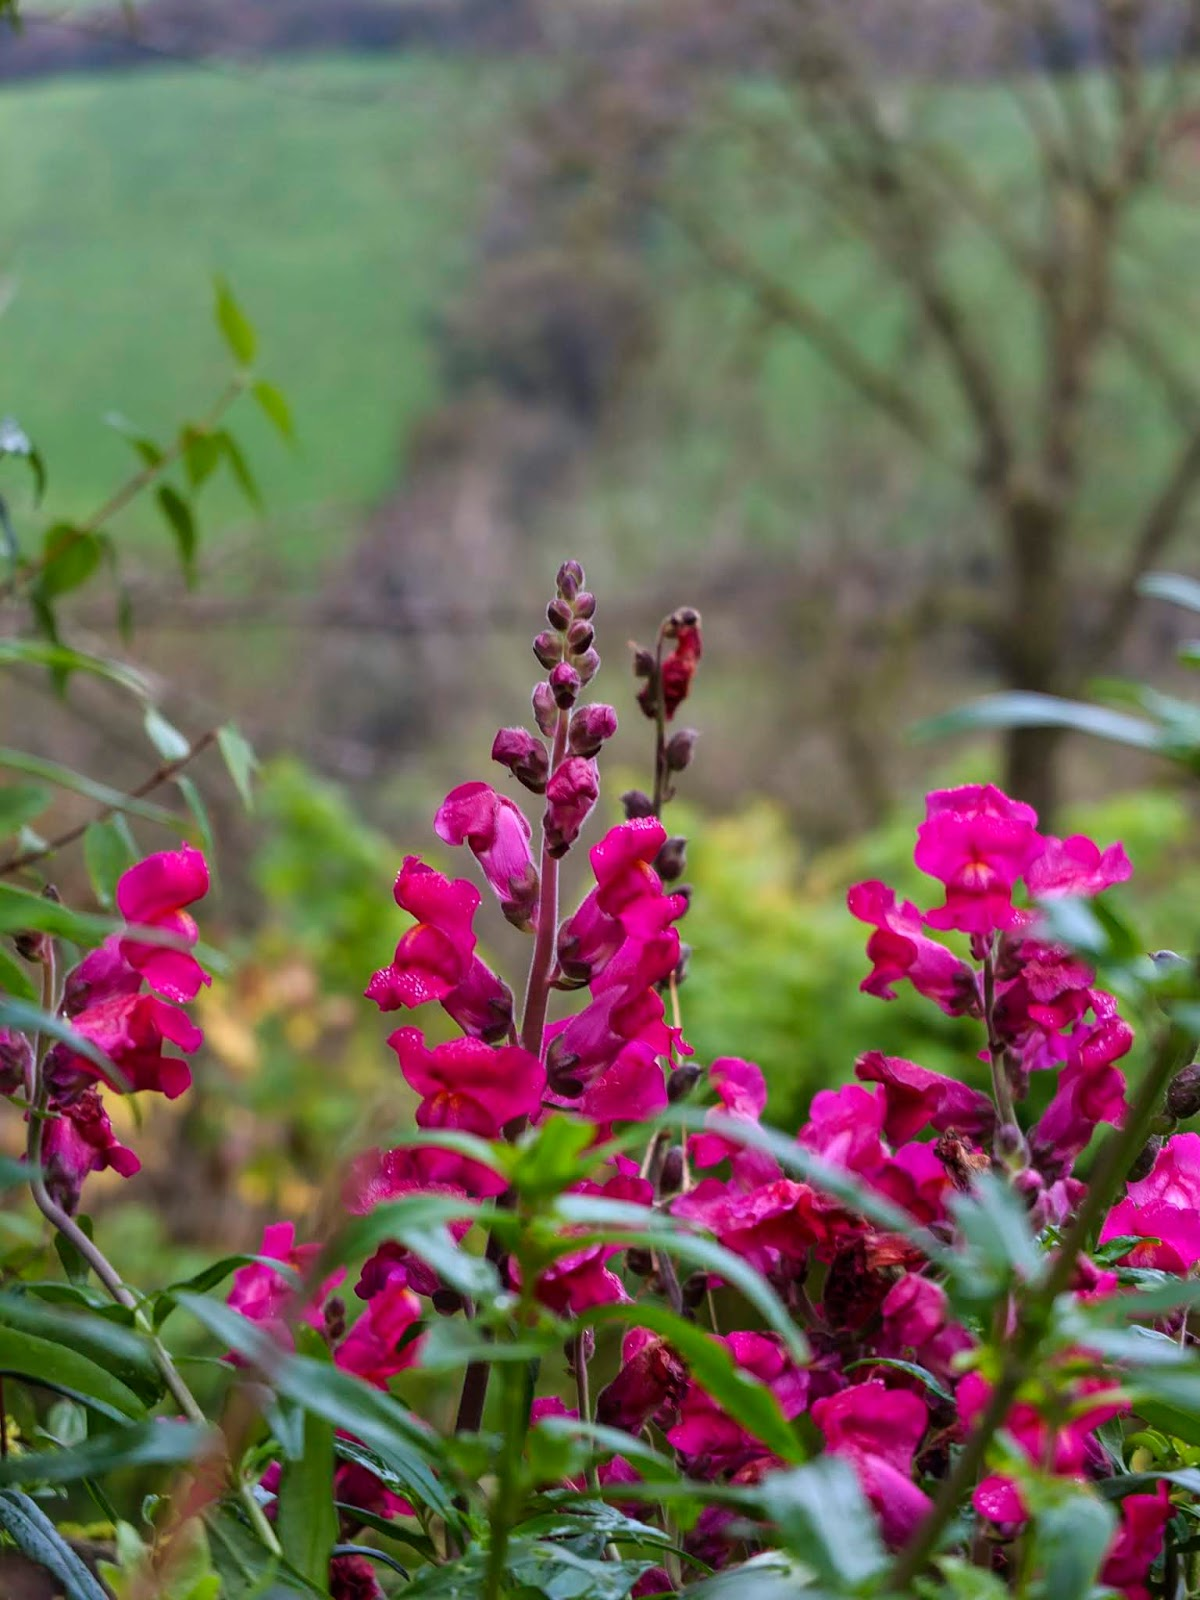 Close up of some pink Snapdragons in a valley garden.